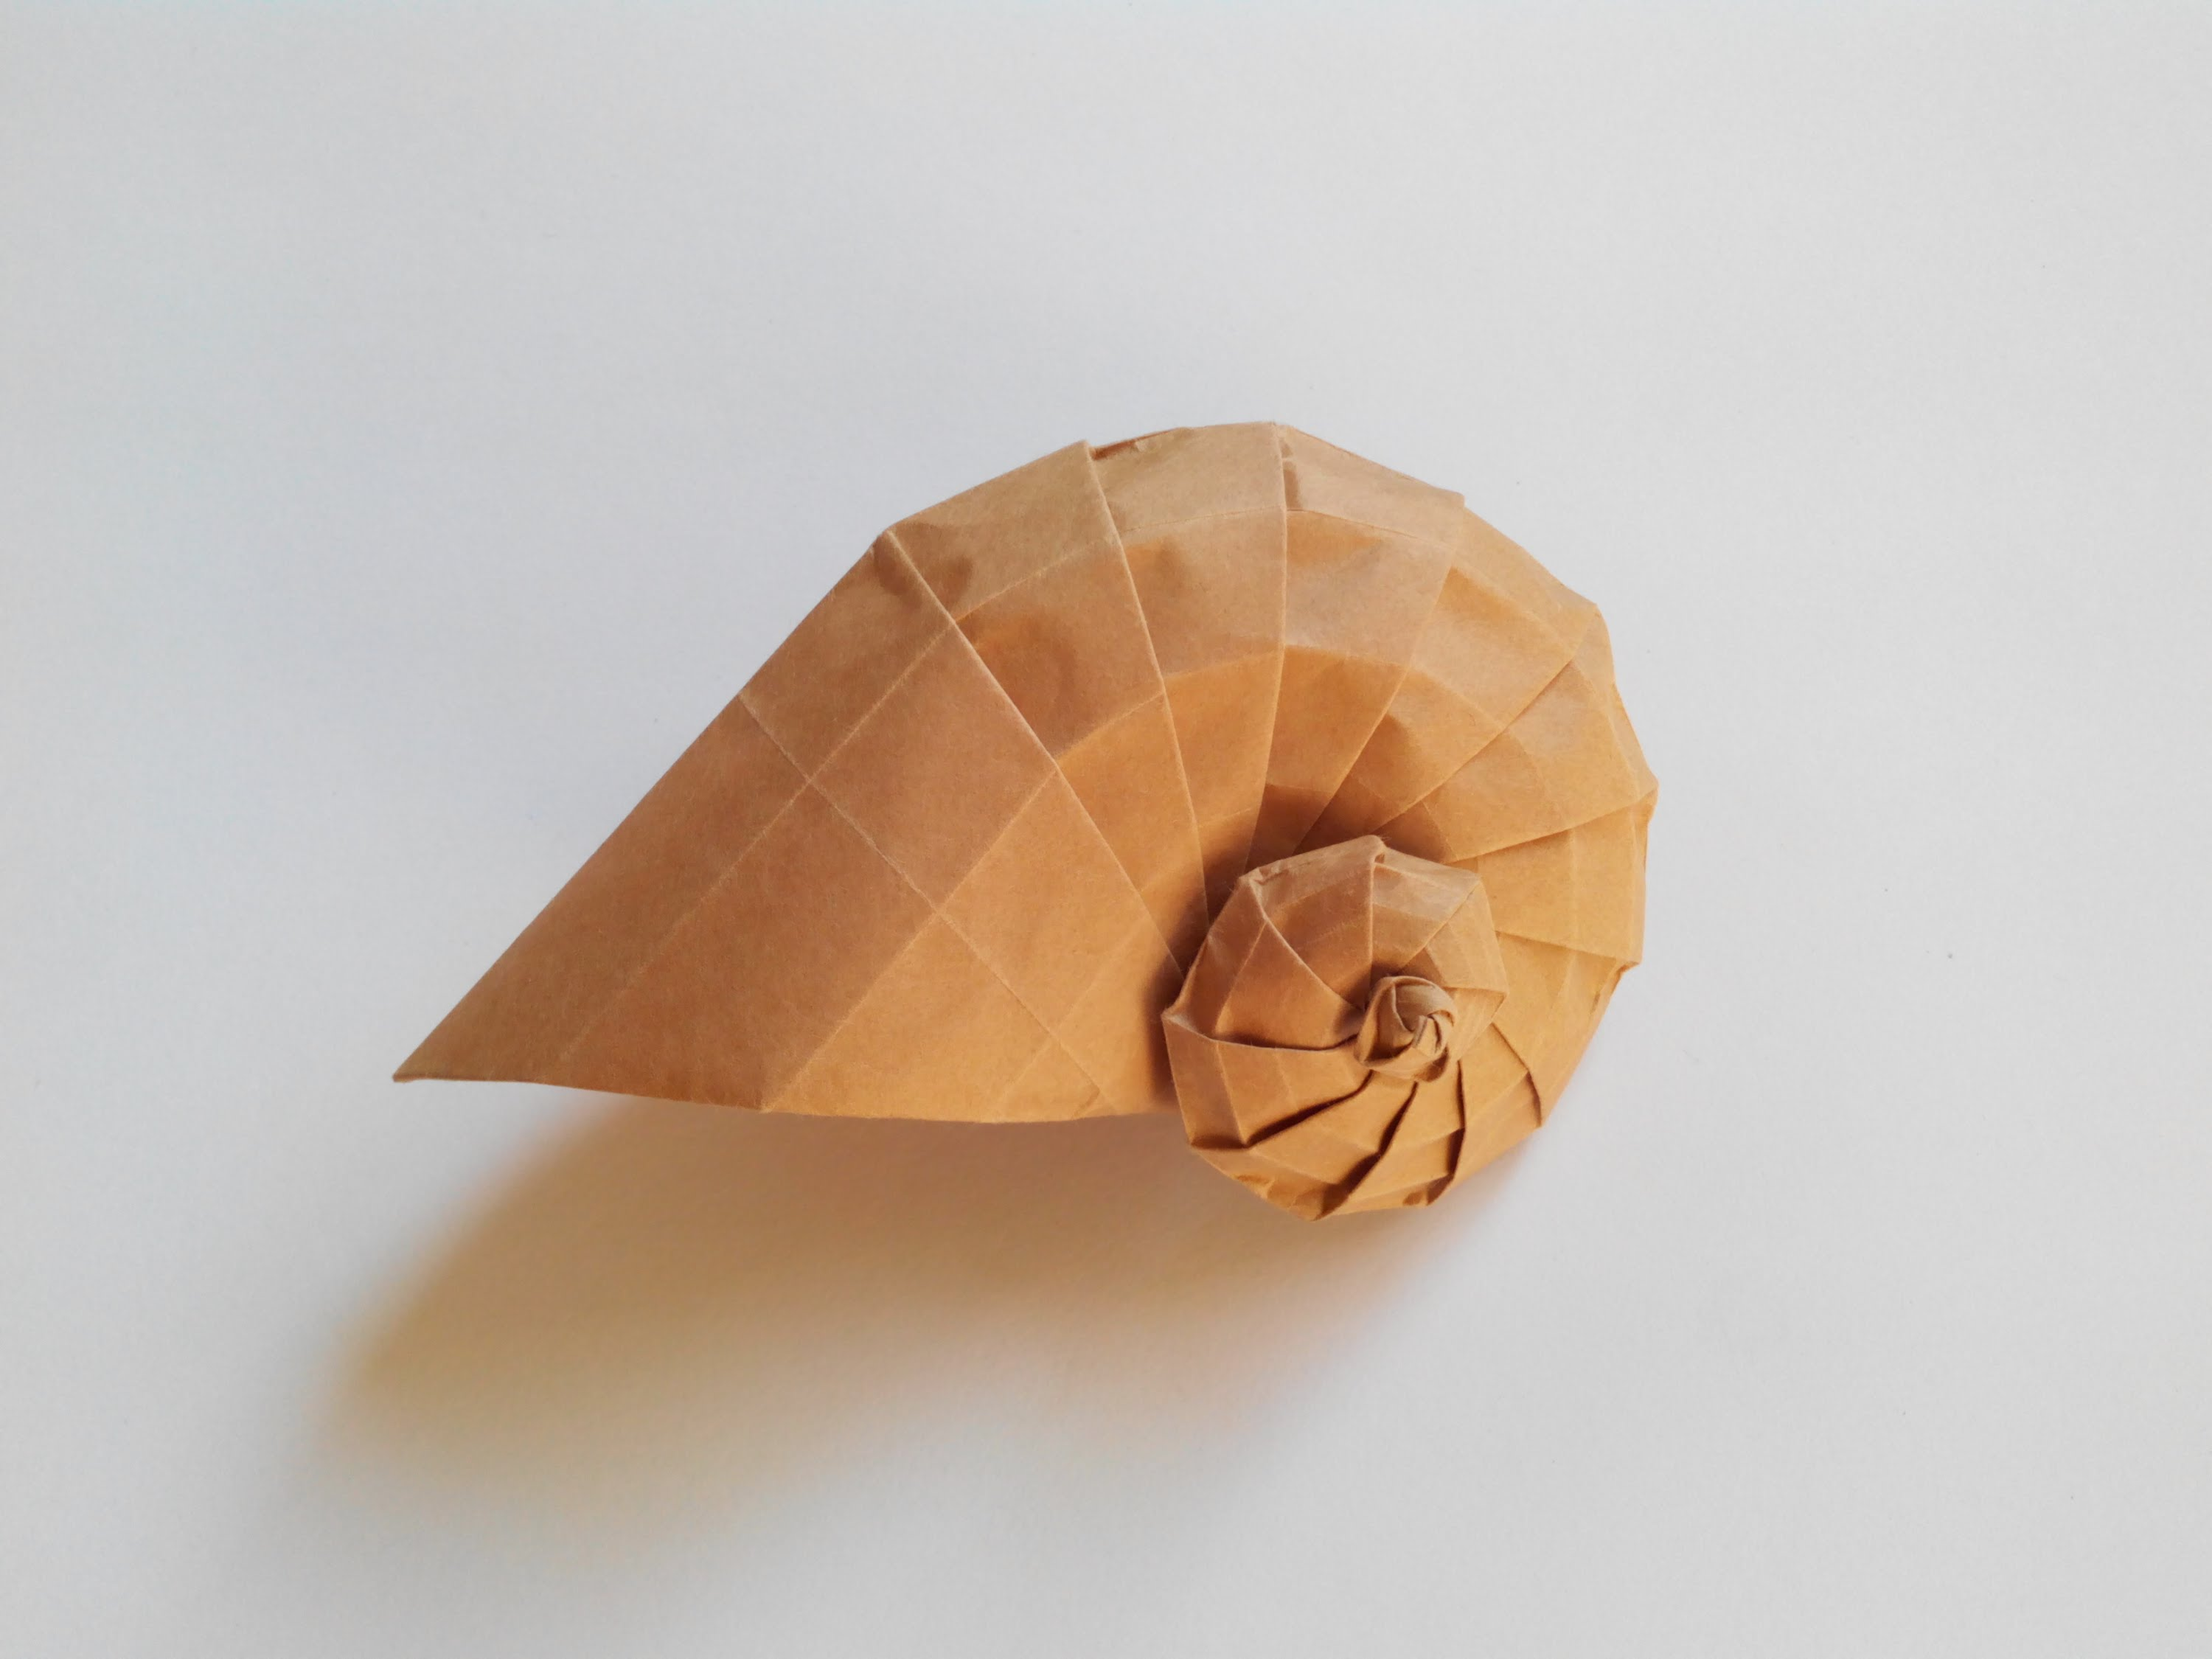 3D Origami StepbyStep Illustrations Boutiquesha Staff